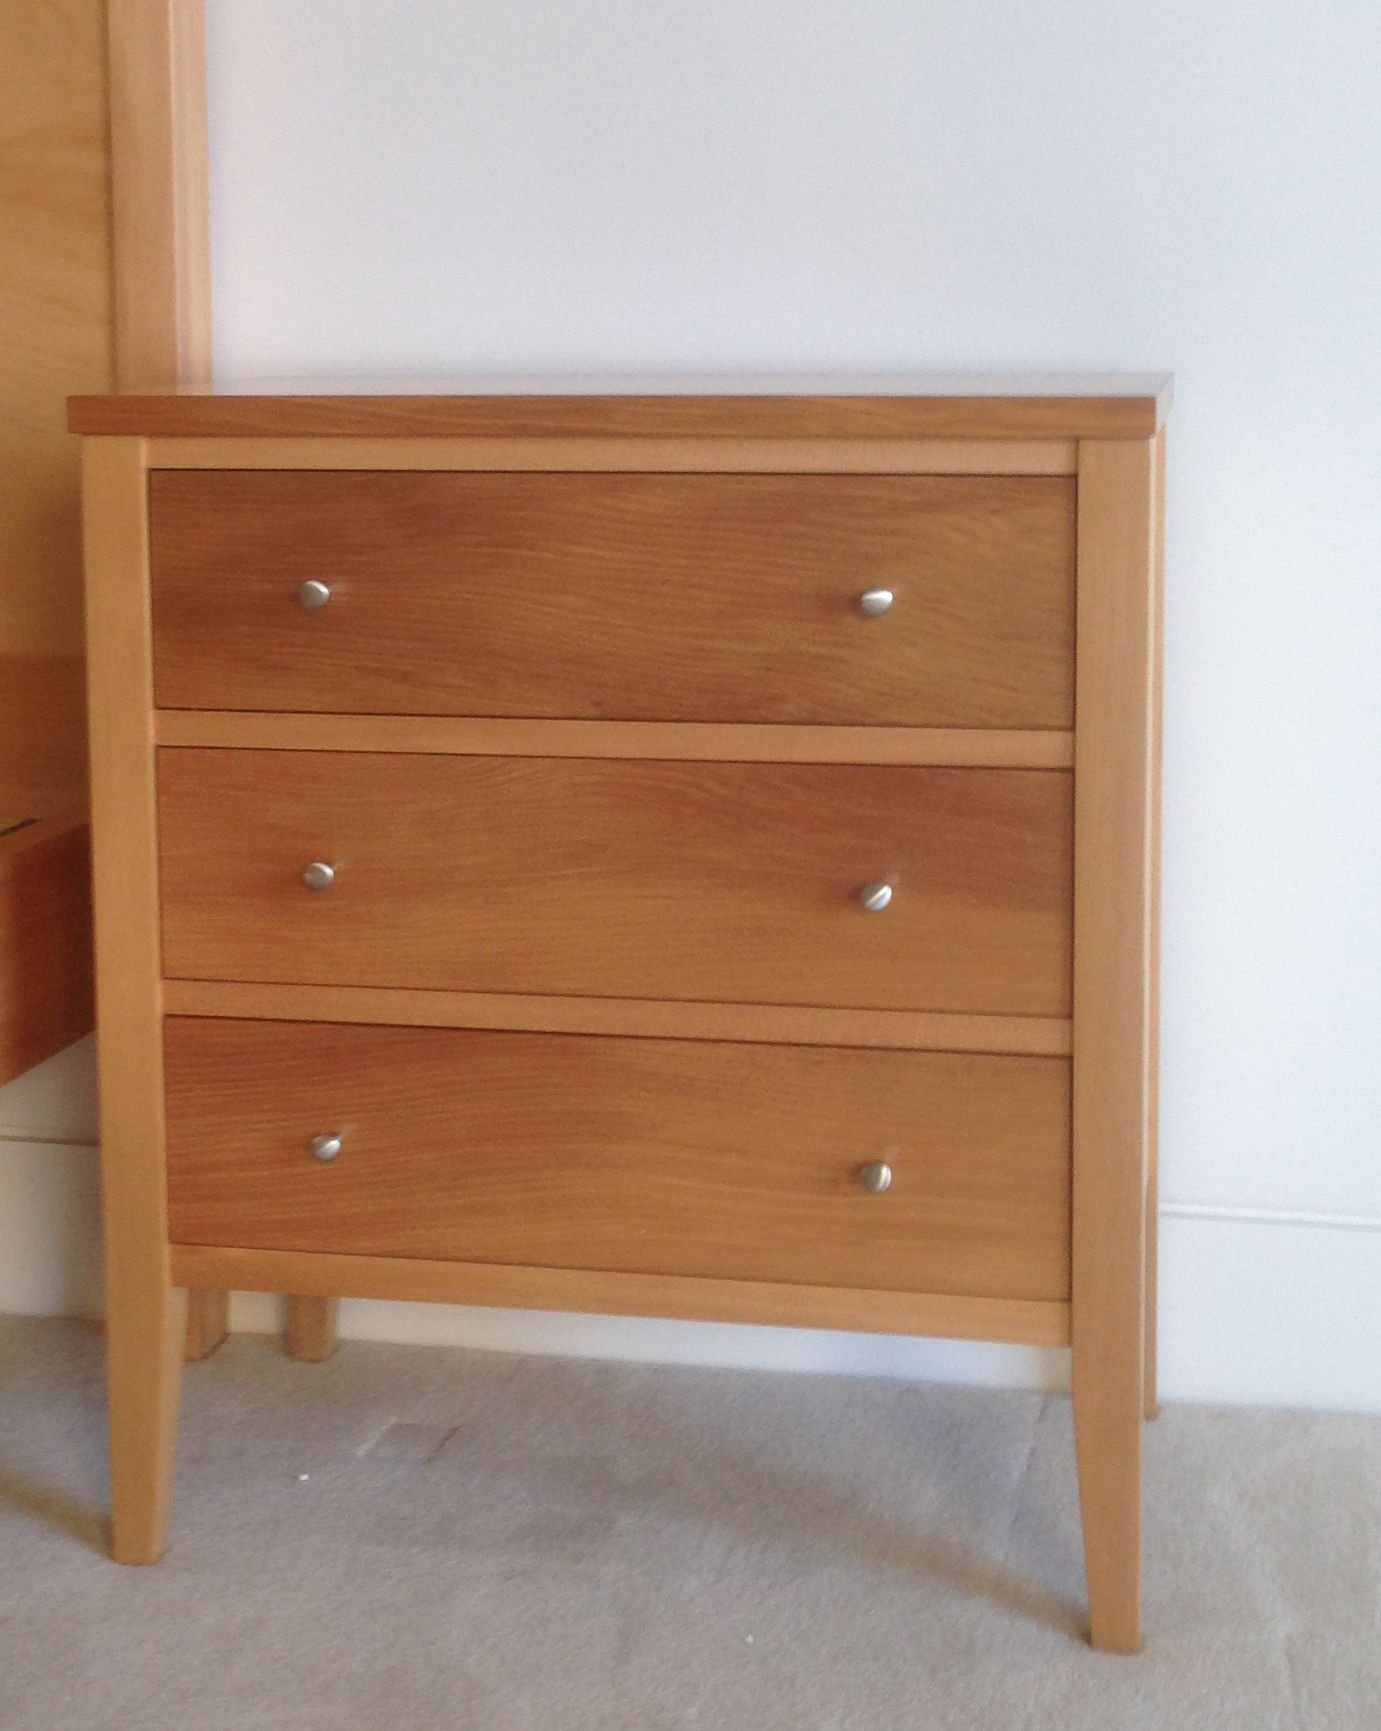 Newport Bedside In Nz Kauri By Rose And Heather Home Decor